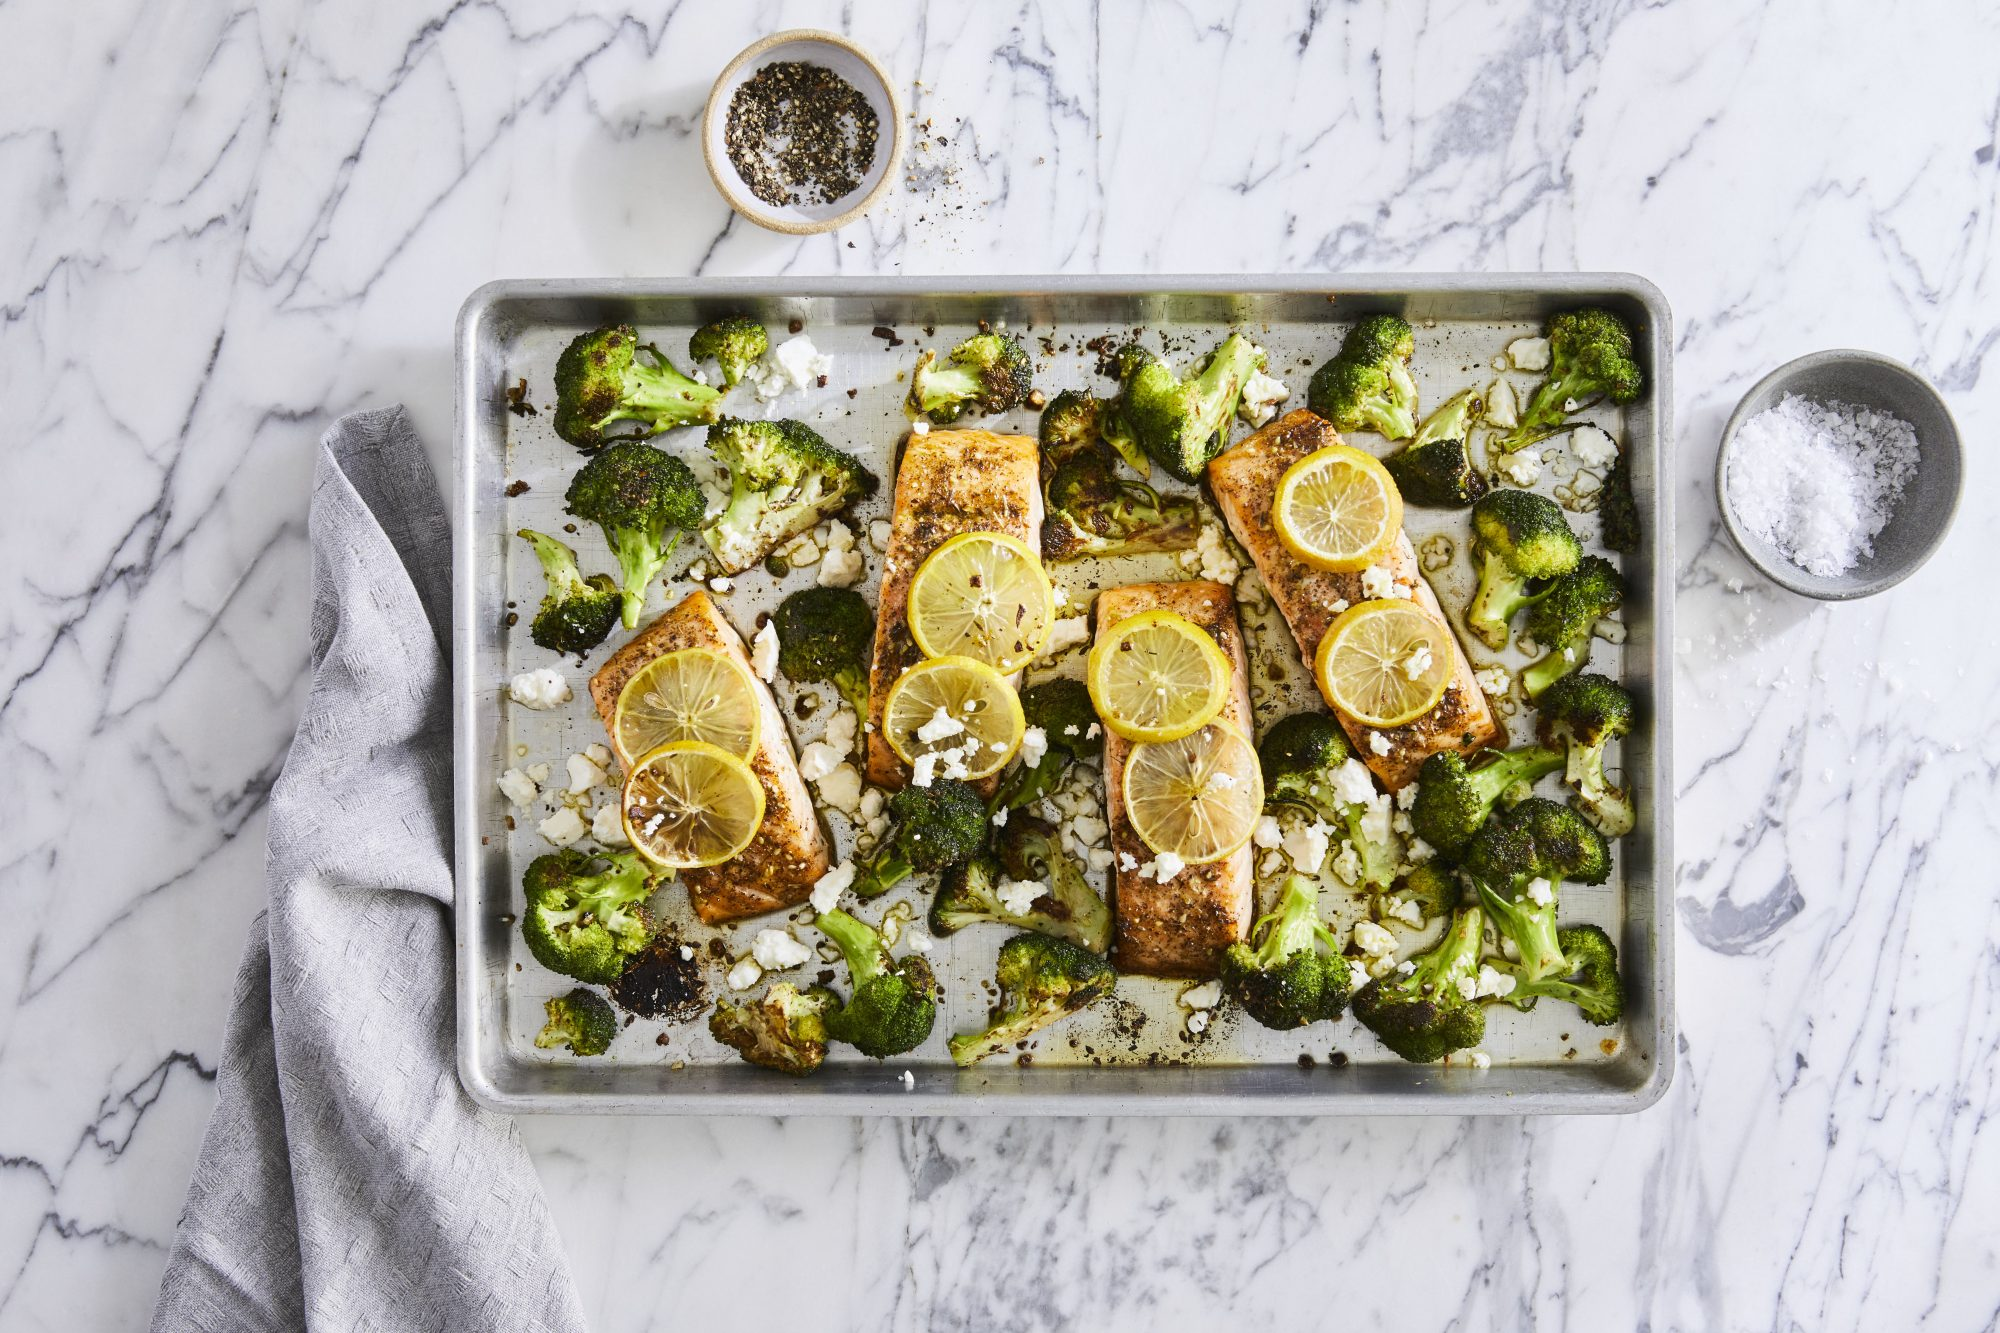 salmon filets on baking sheet with broccoli and lemon and cheese